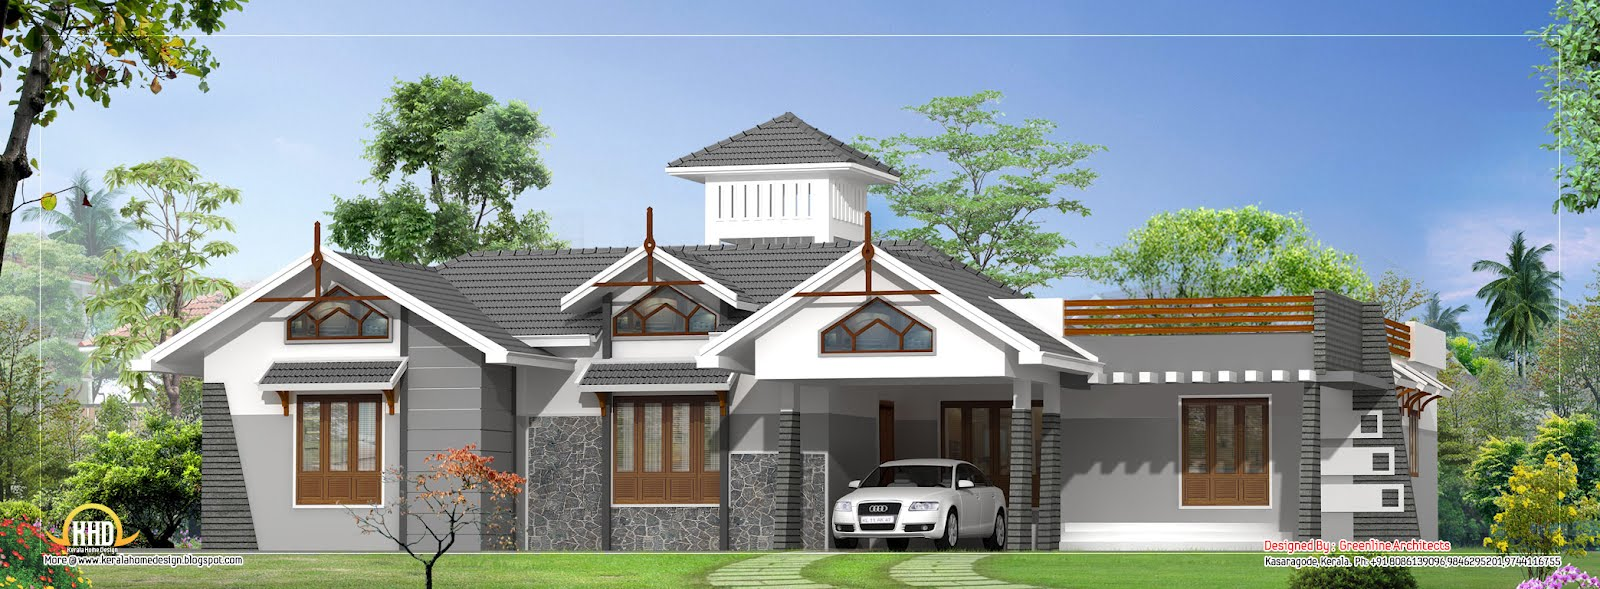 Dd08antonio Design Home Single Floor House Plan 2630 Sq